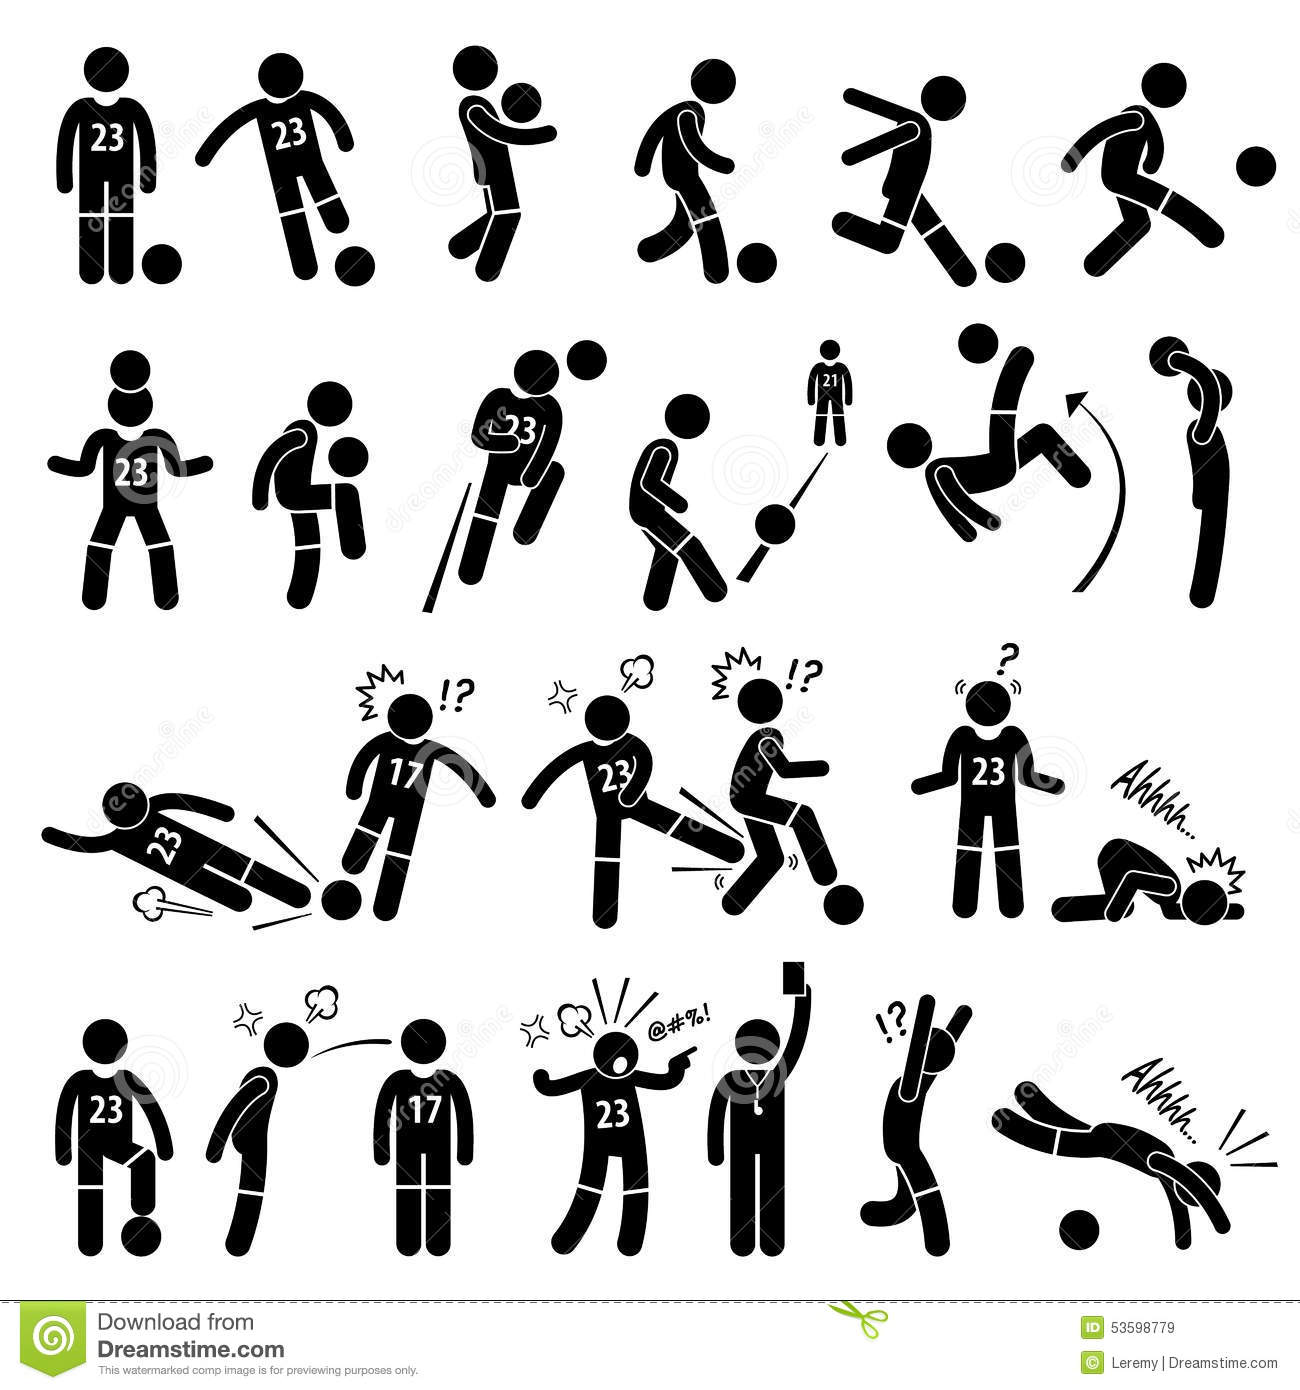 Football Soccer Player Footballer Actions Poses Cliparts